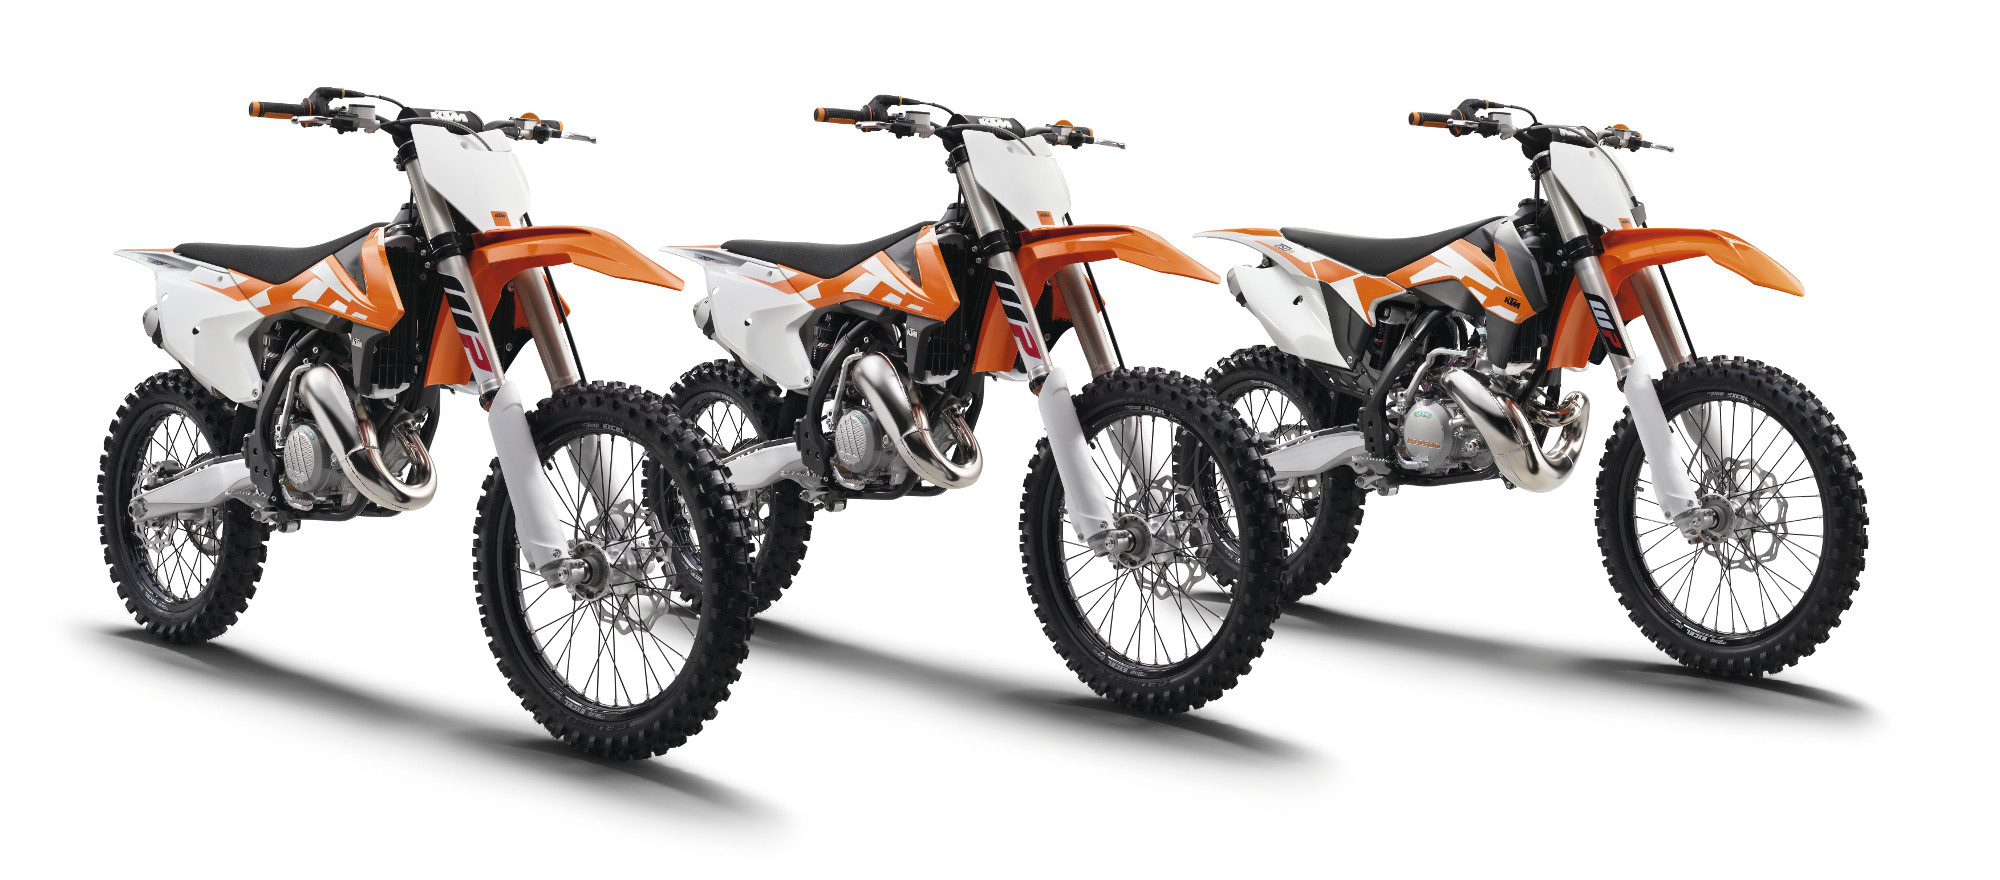 interview of the month: how to develop a new generation – ktm r&d